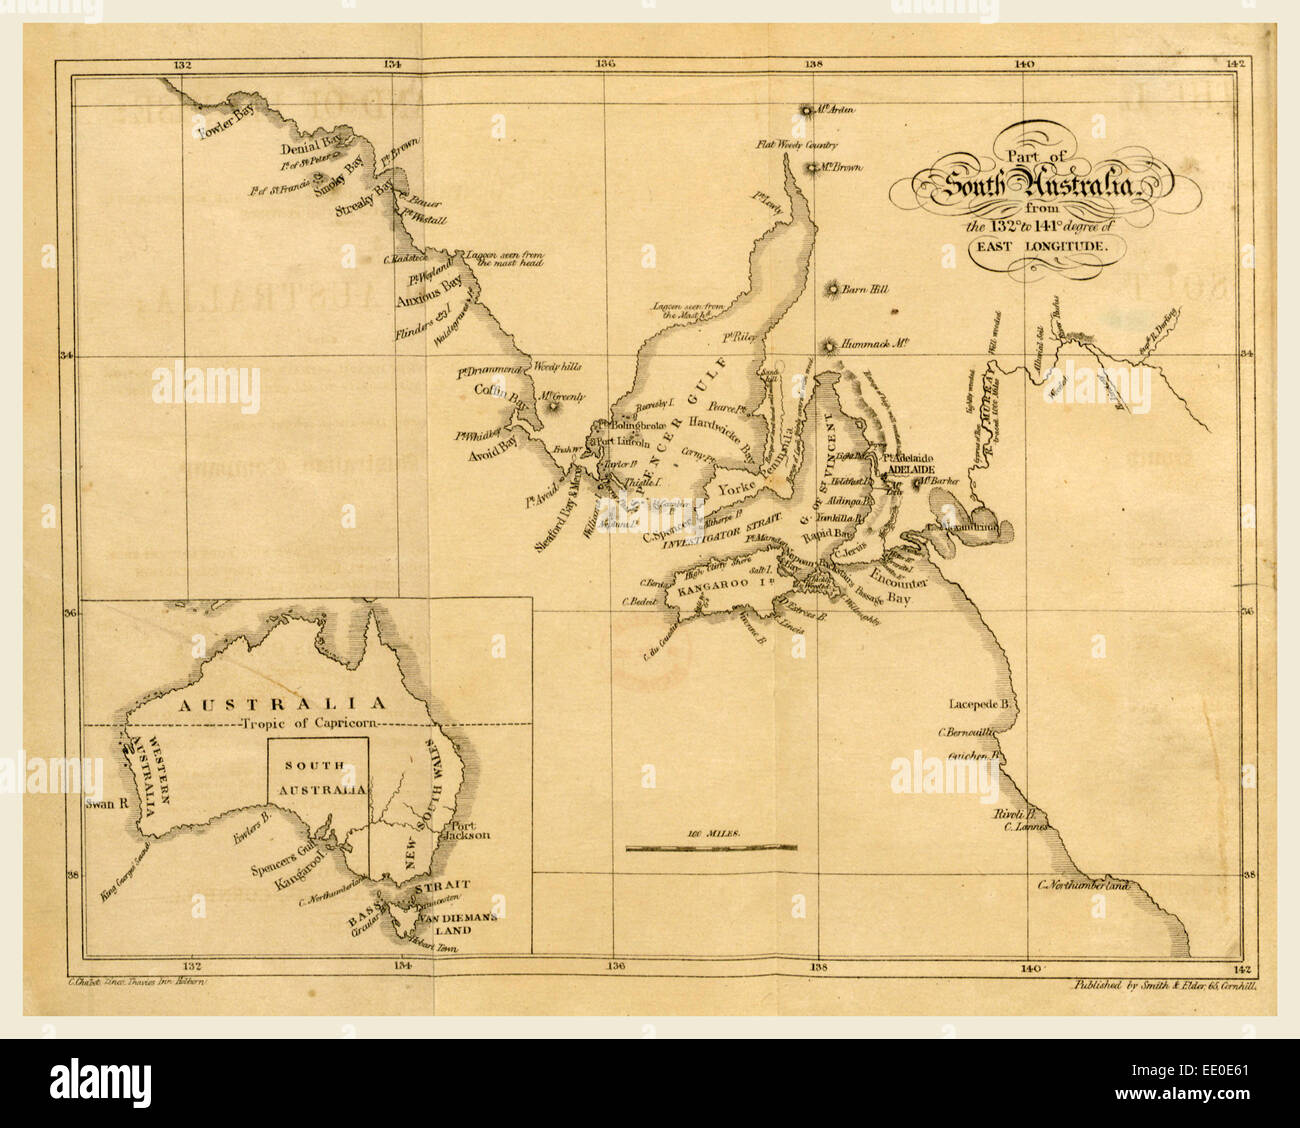 Map of South Australia, 19th century engraving - Stock Image